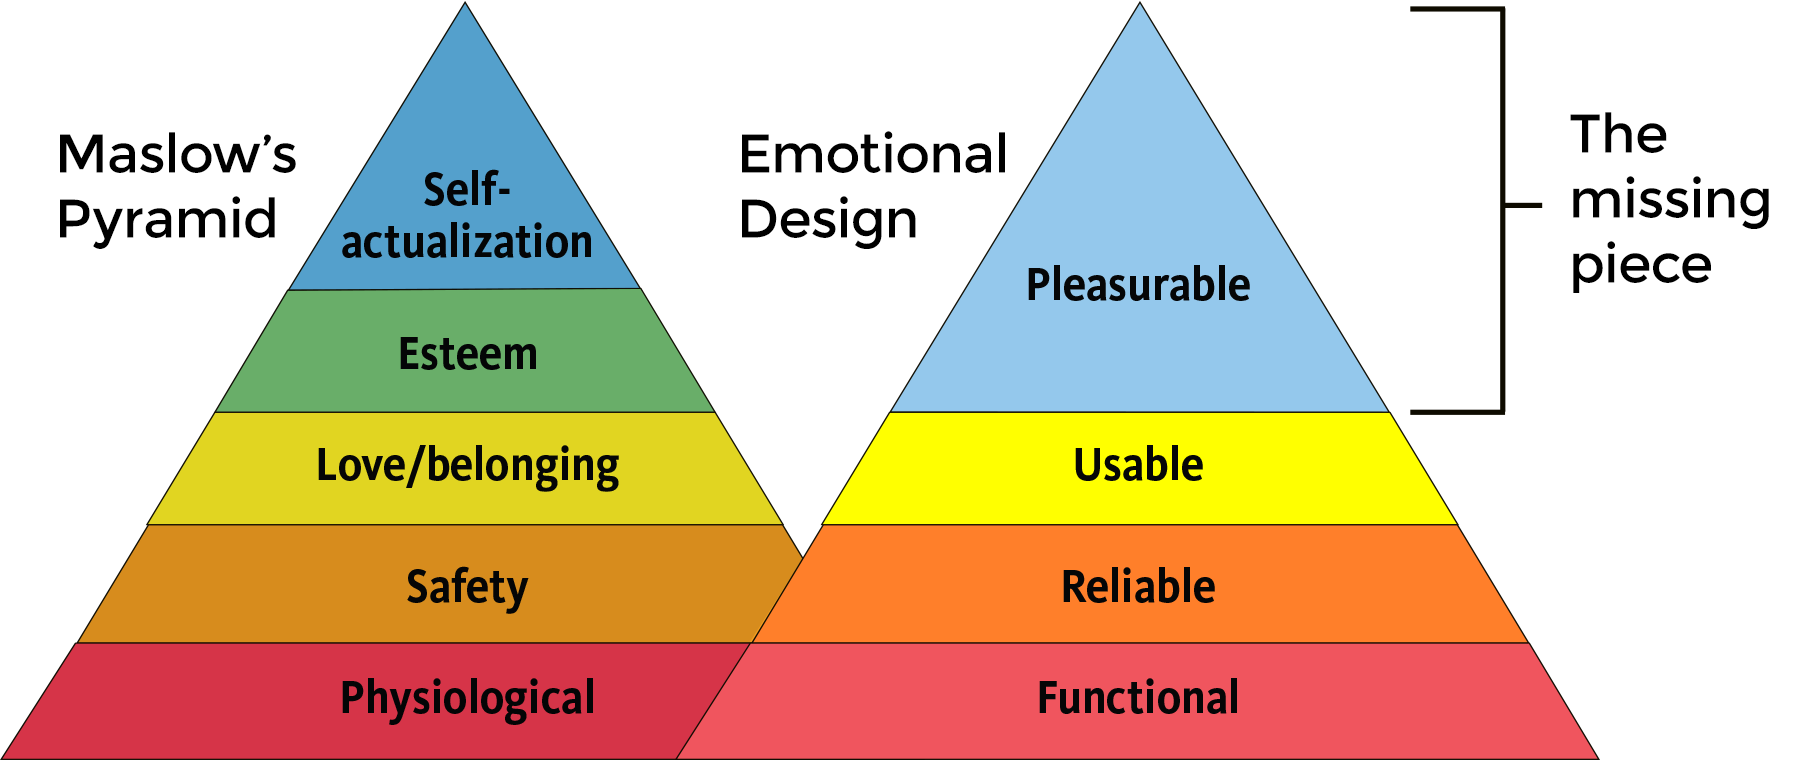 Maslow Pyramid and emotional design relationship